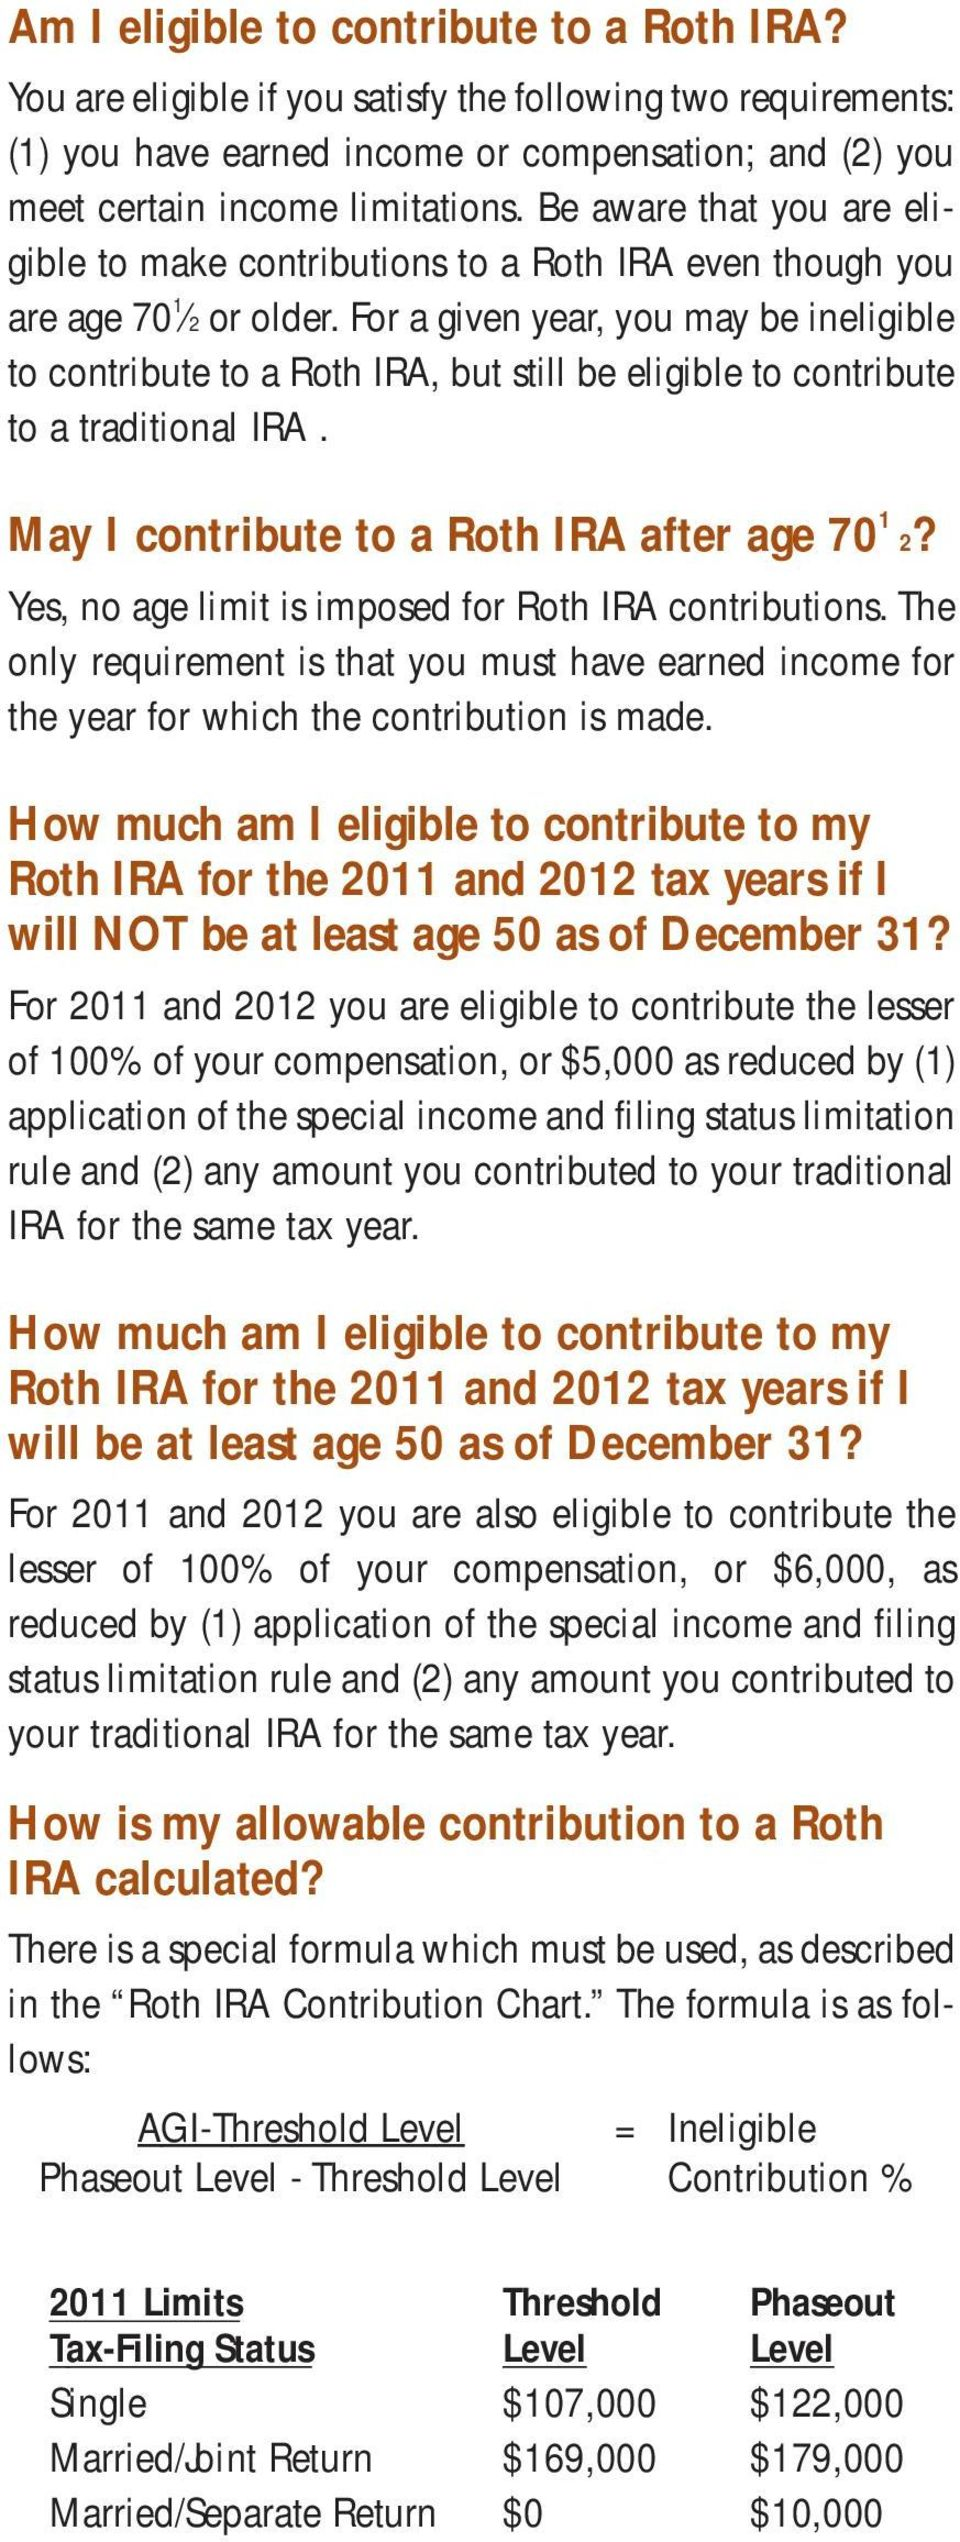 For a given year, you may be ineligible to contribute to a Roth IRA, but still be eligible to contribute to a traditional IRA. May I contribute to a Roth IRA after age 70 1 2?